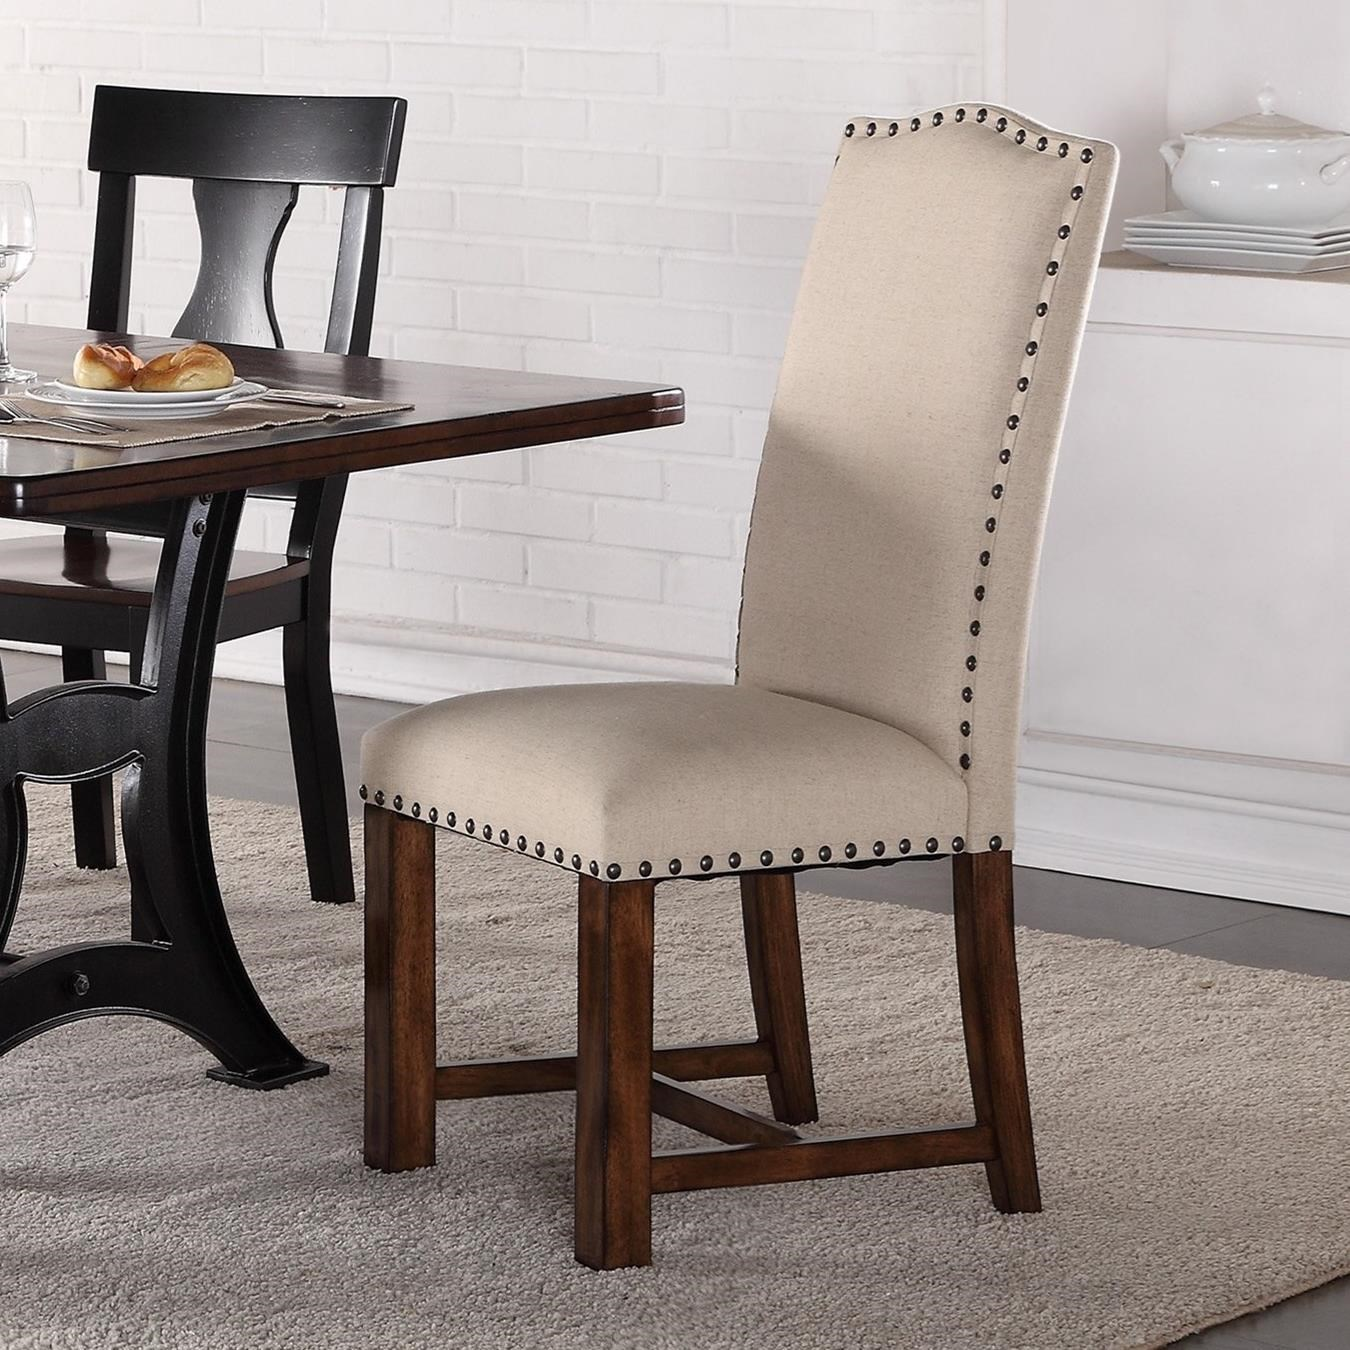 Crown mark astor 2106s upholstered parson chair with nailhead trim dunk bright furniture - Nailhead dining room chairs ...